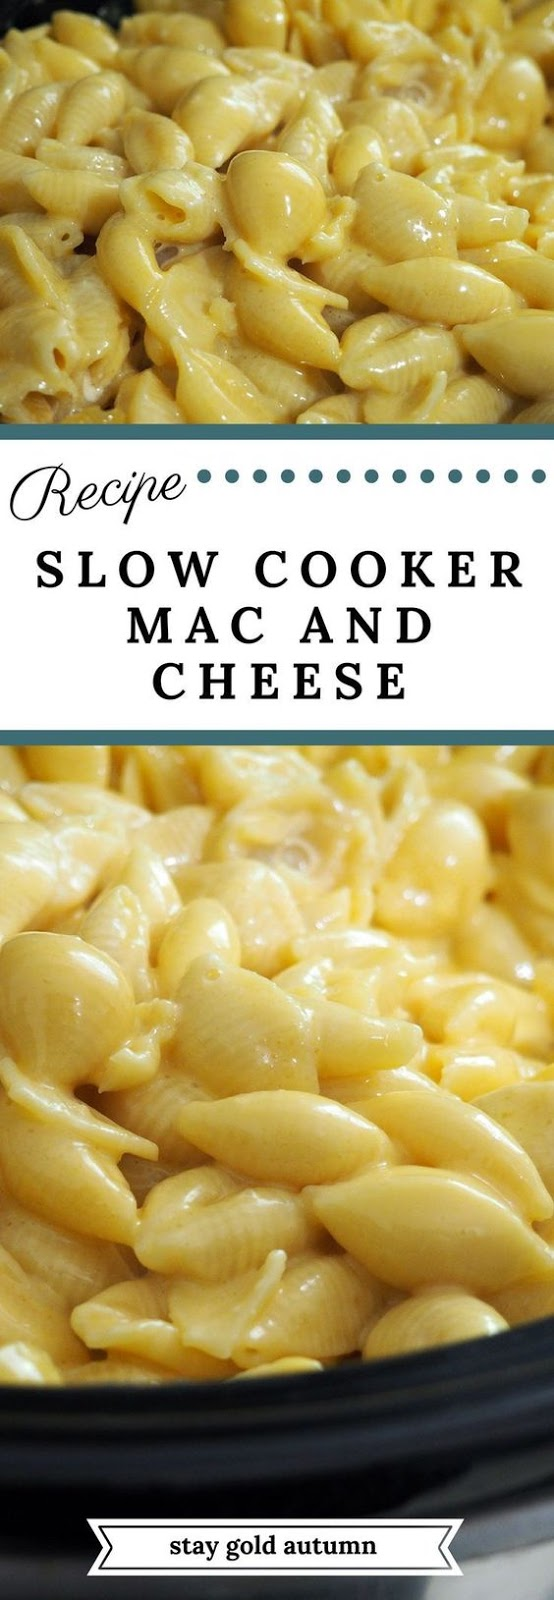 Slow Cooker Mac And Cheese #slowcooker #mac #cheese #macaroni #easyrecipes